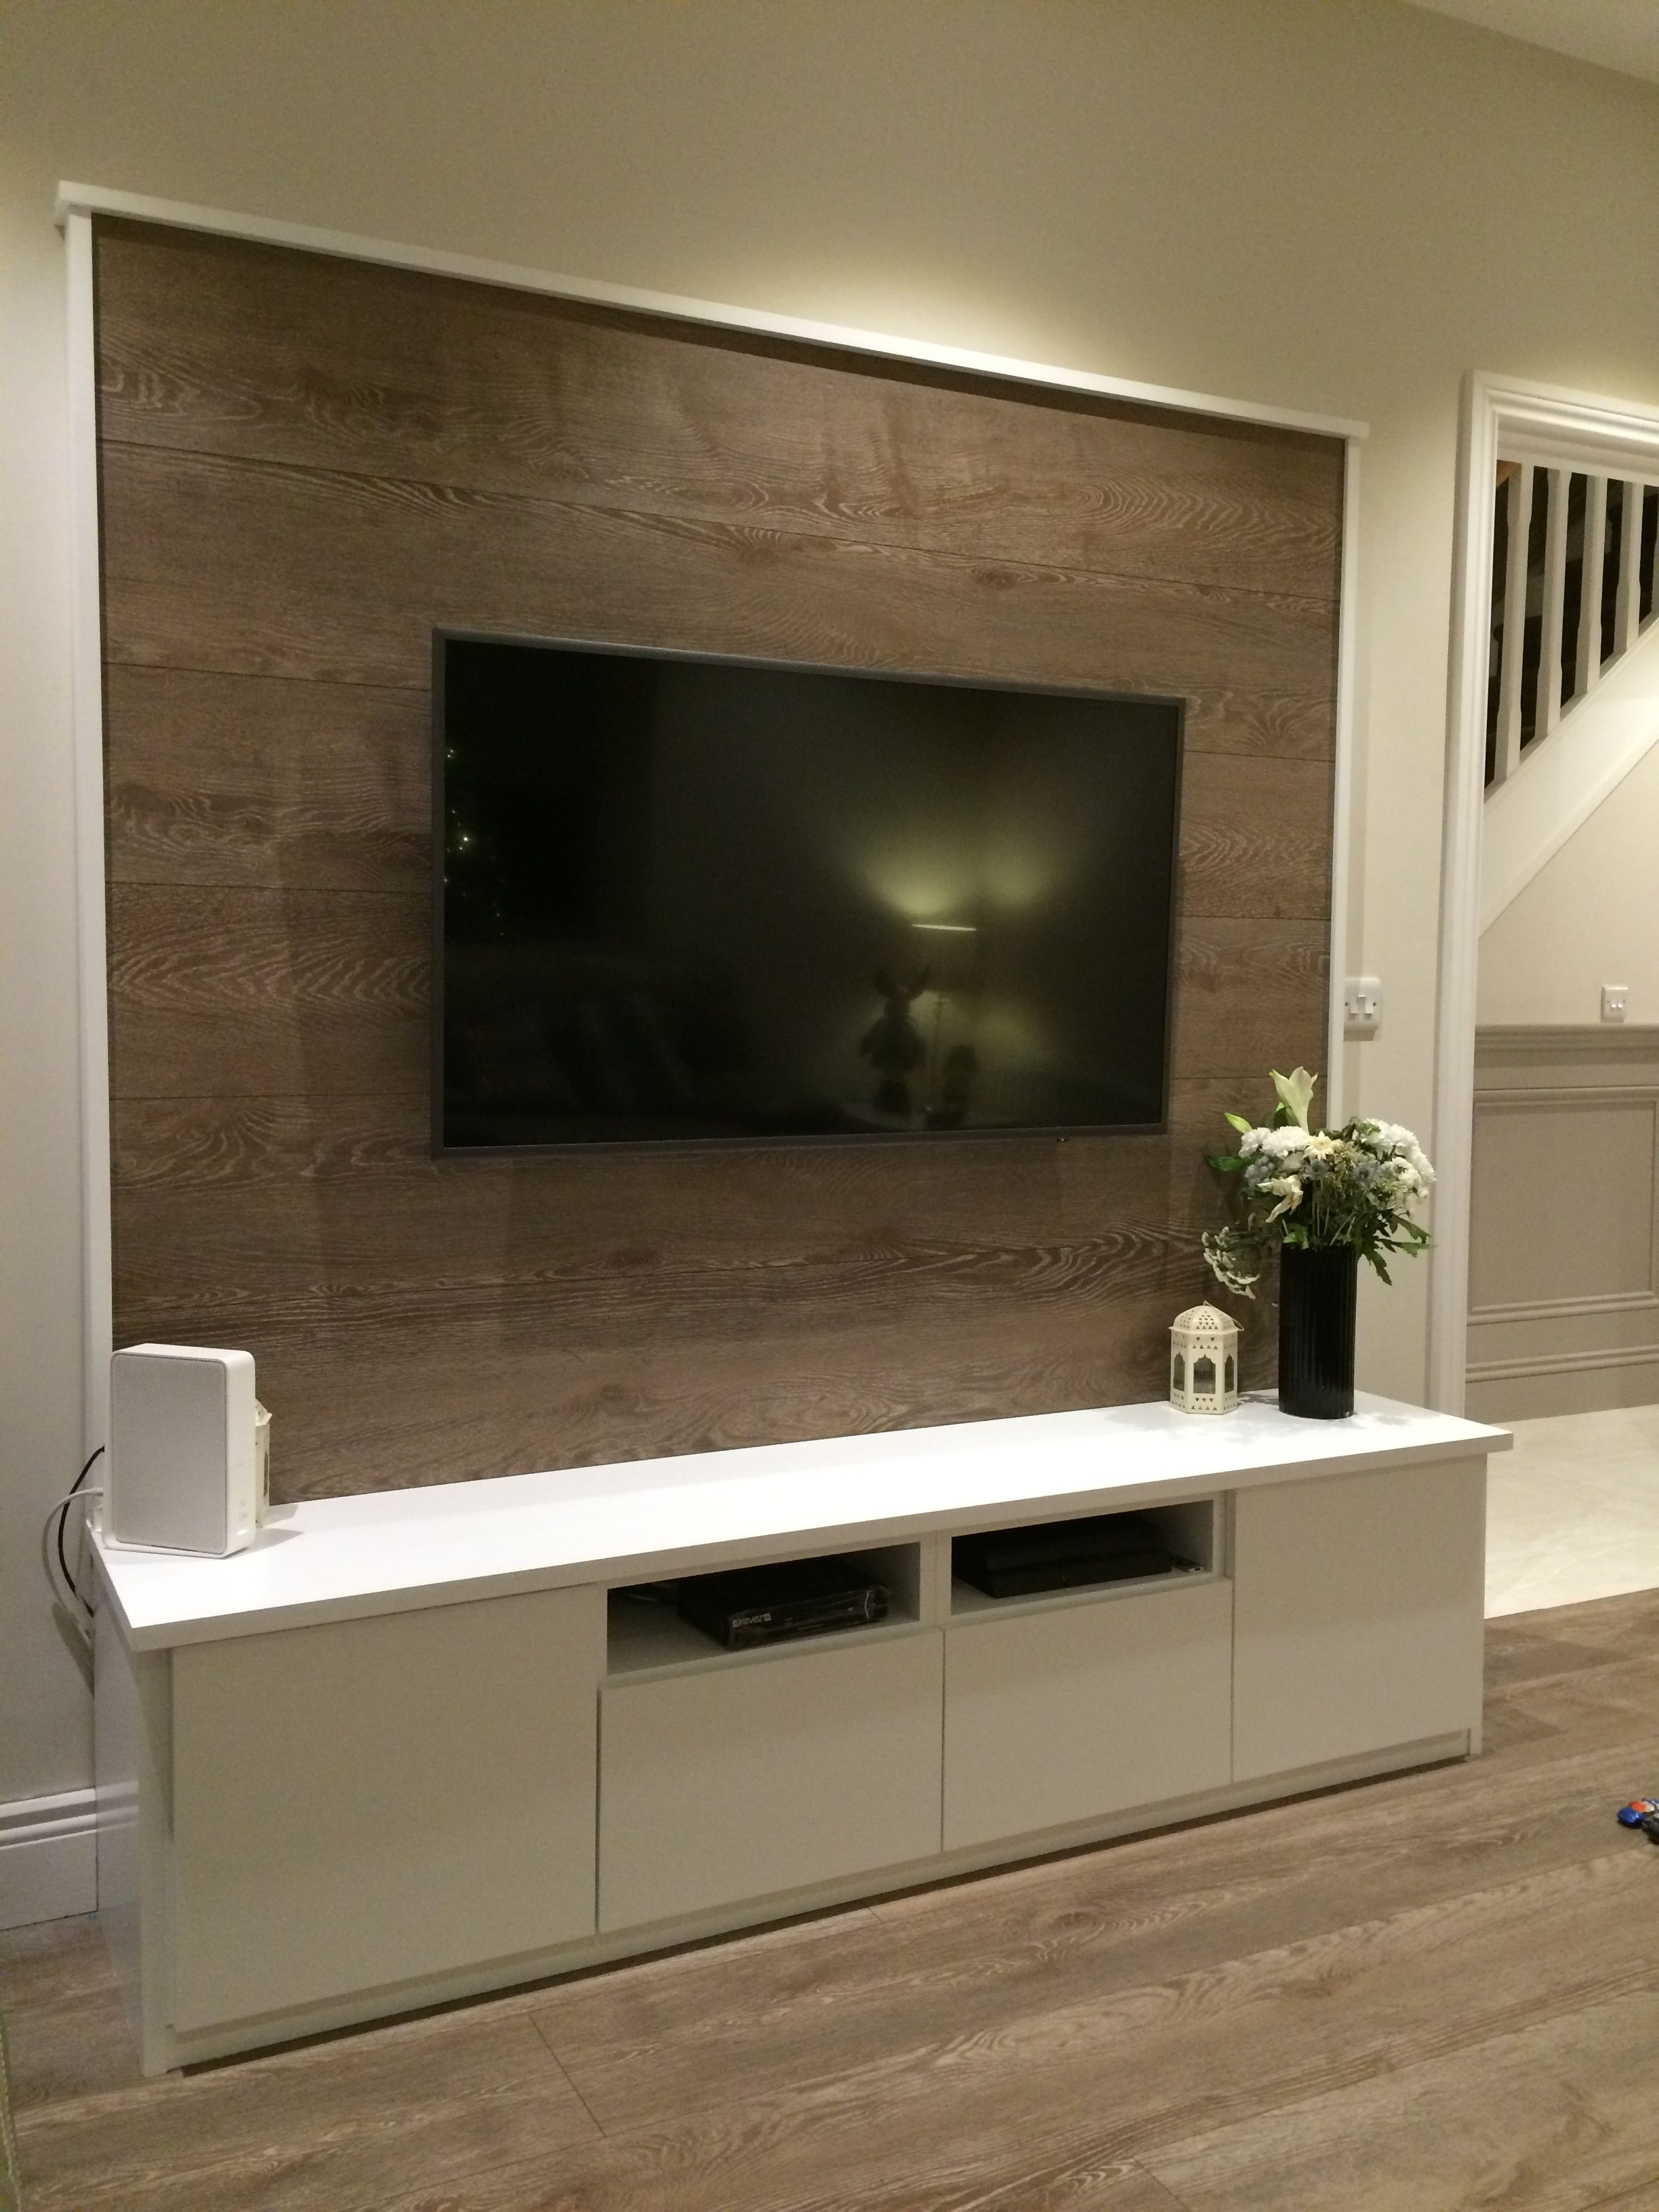 Sitting room TV unit made by Alan